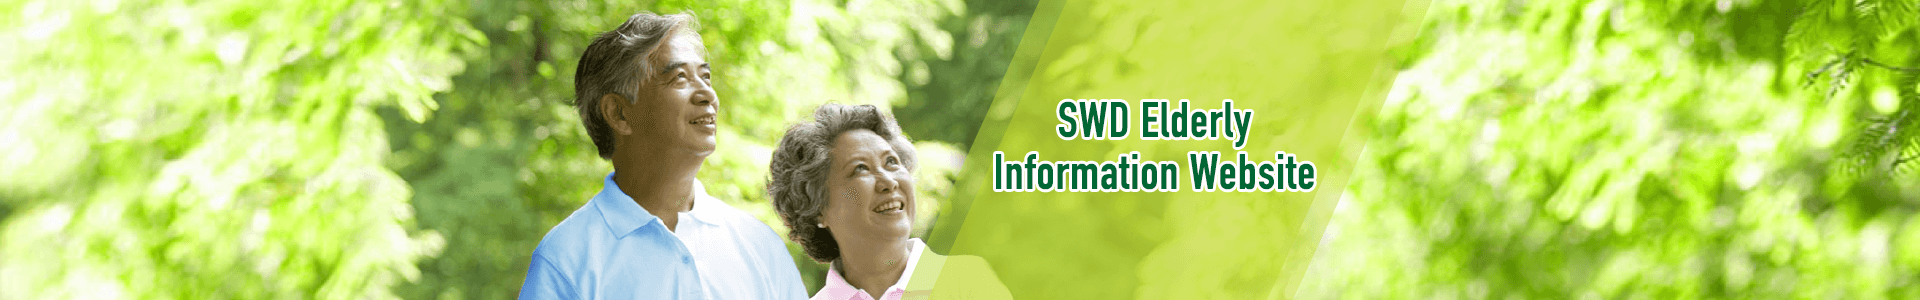 SWD Elderly Information Website